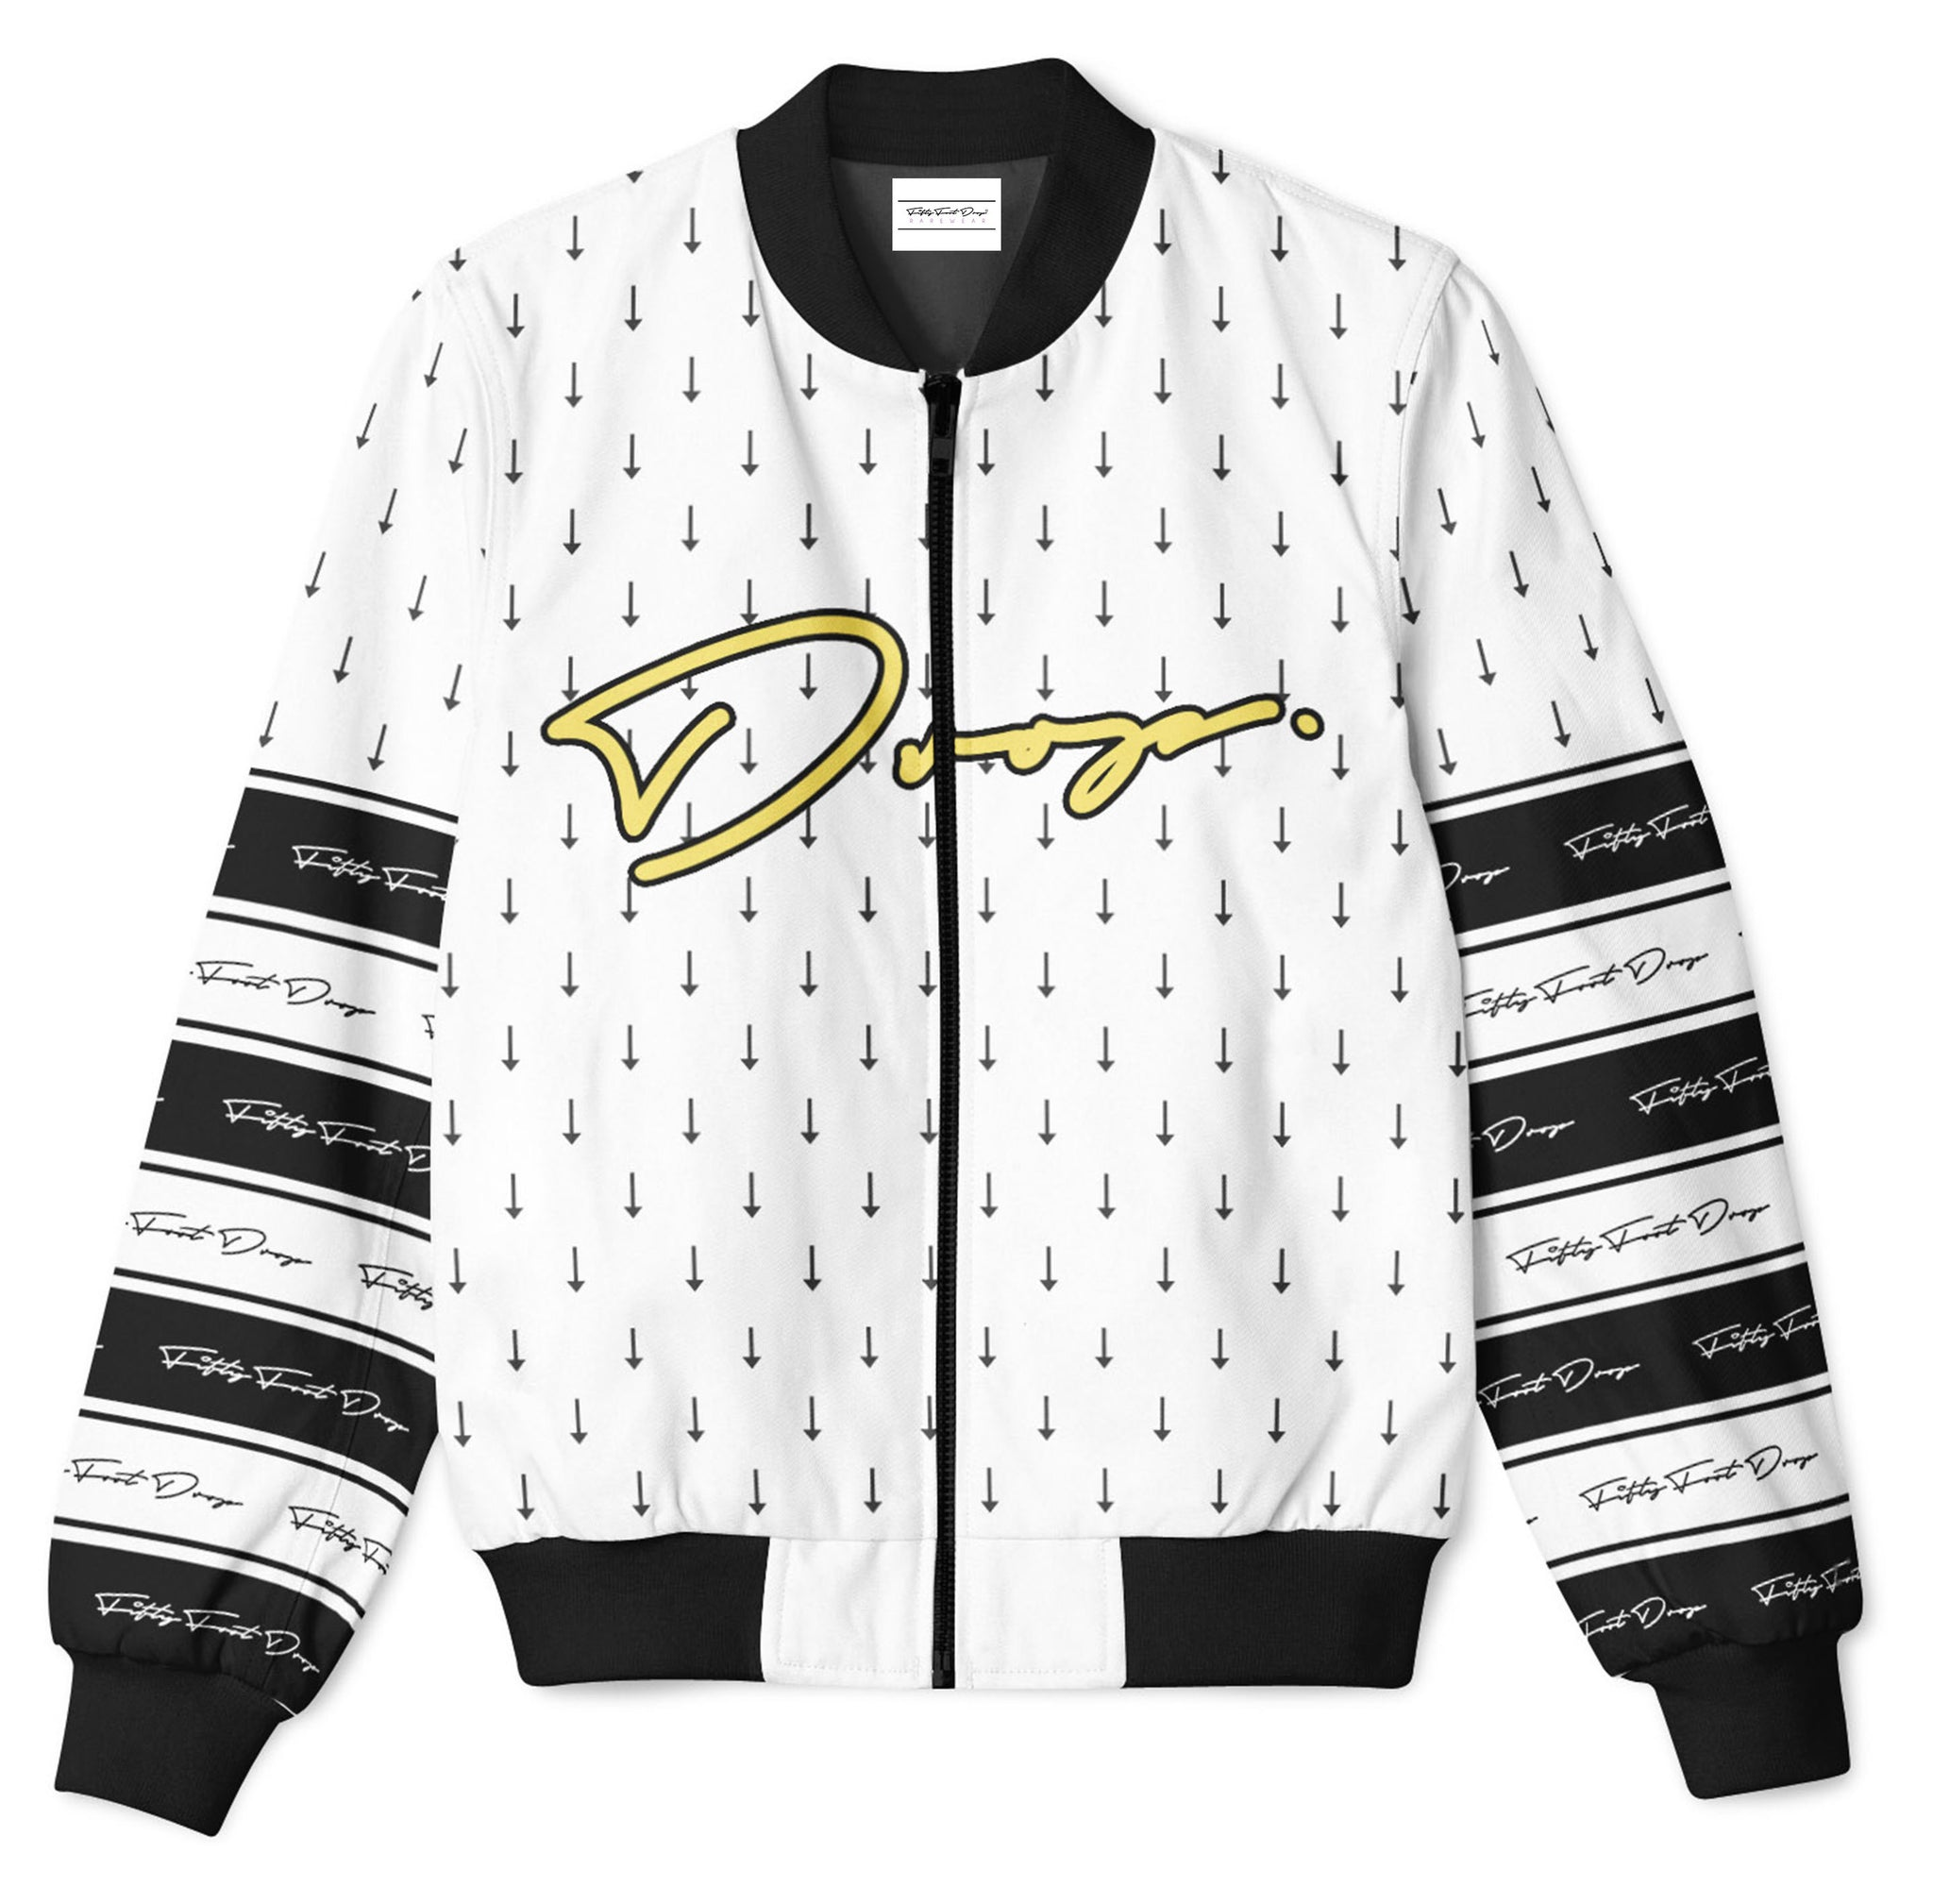 DROP. 2 - FIFTY FOOT DROP - BOMBER JACKET  Fifty Foot Drop  fresh-on-road.myshopify.com Fifty Foot Drop